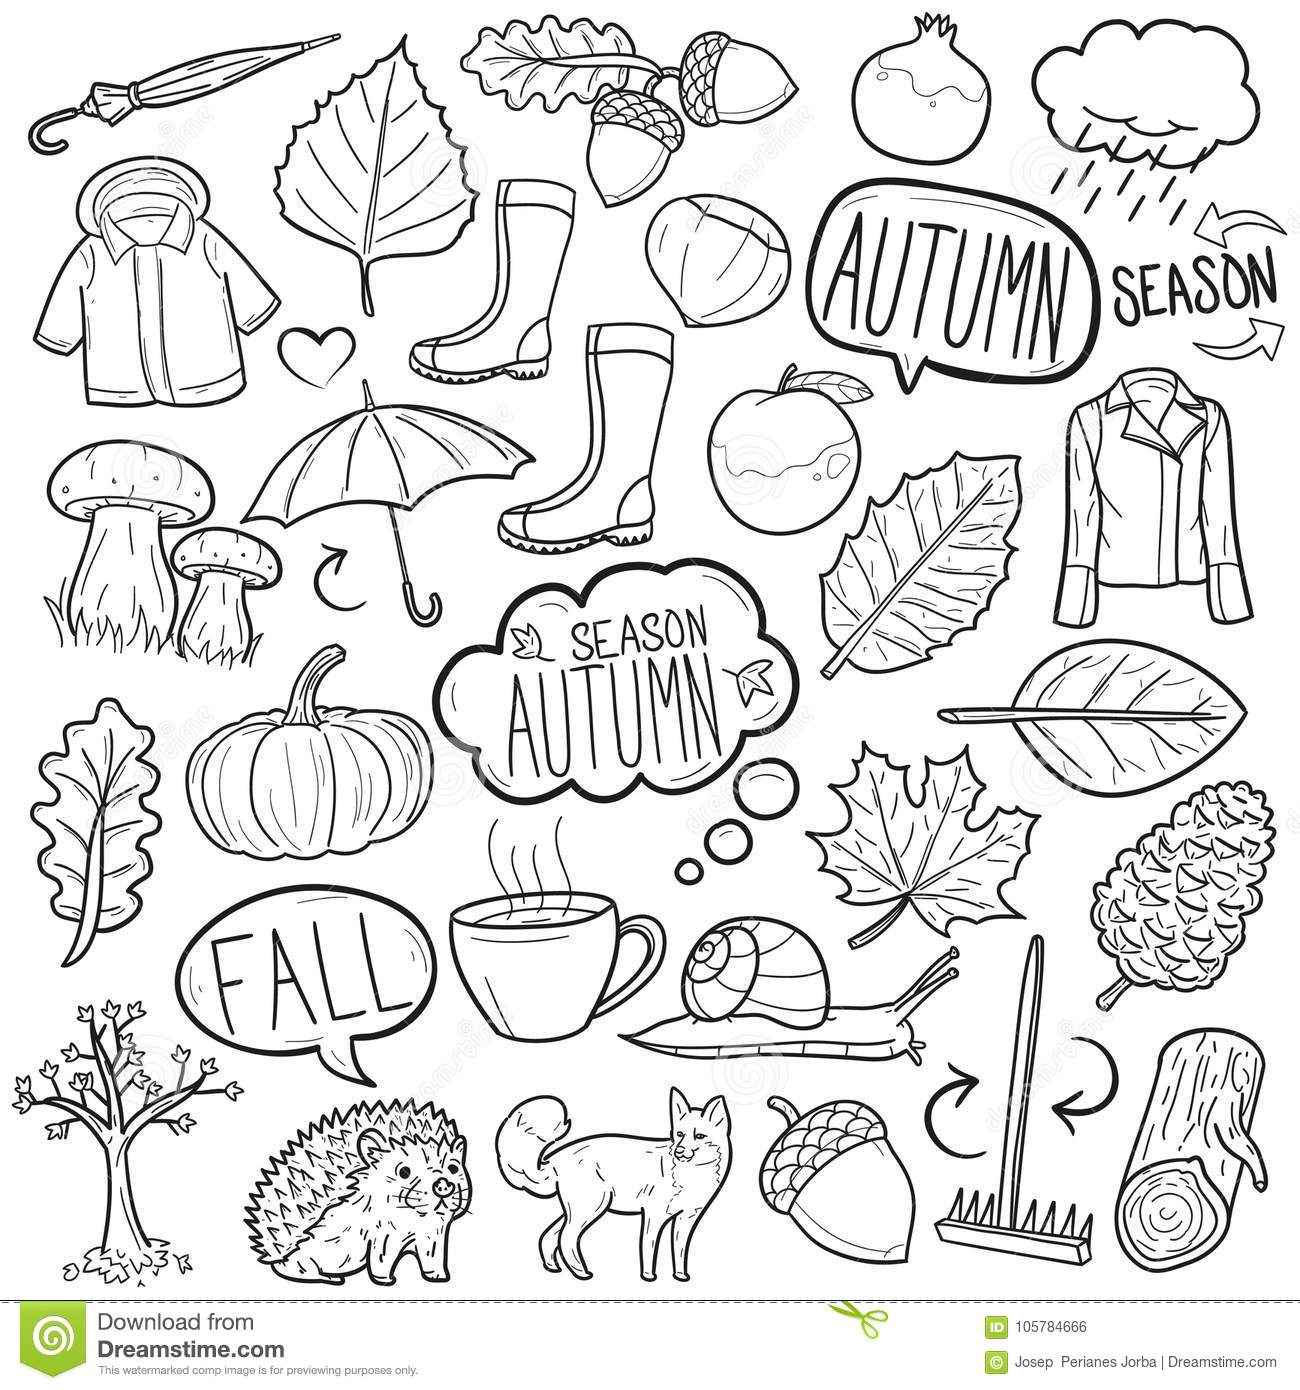 Season Autumn Traditional Doodle Icons Sketch Hand Made